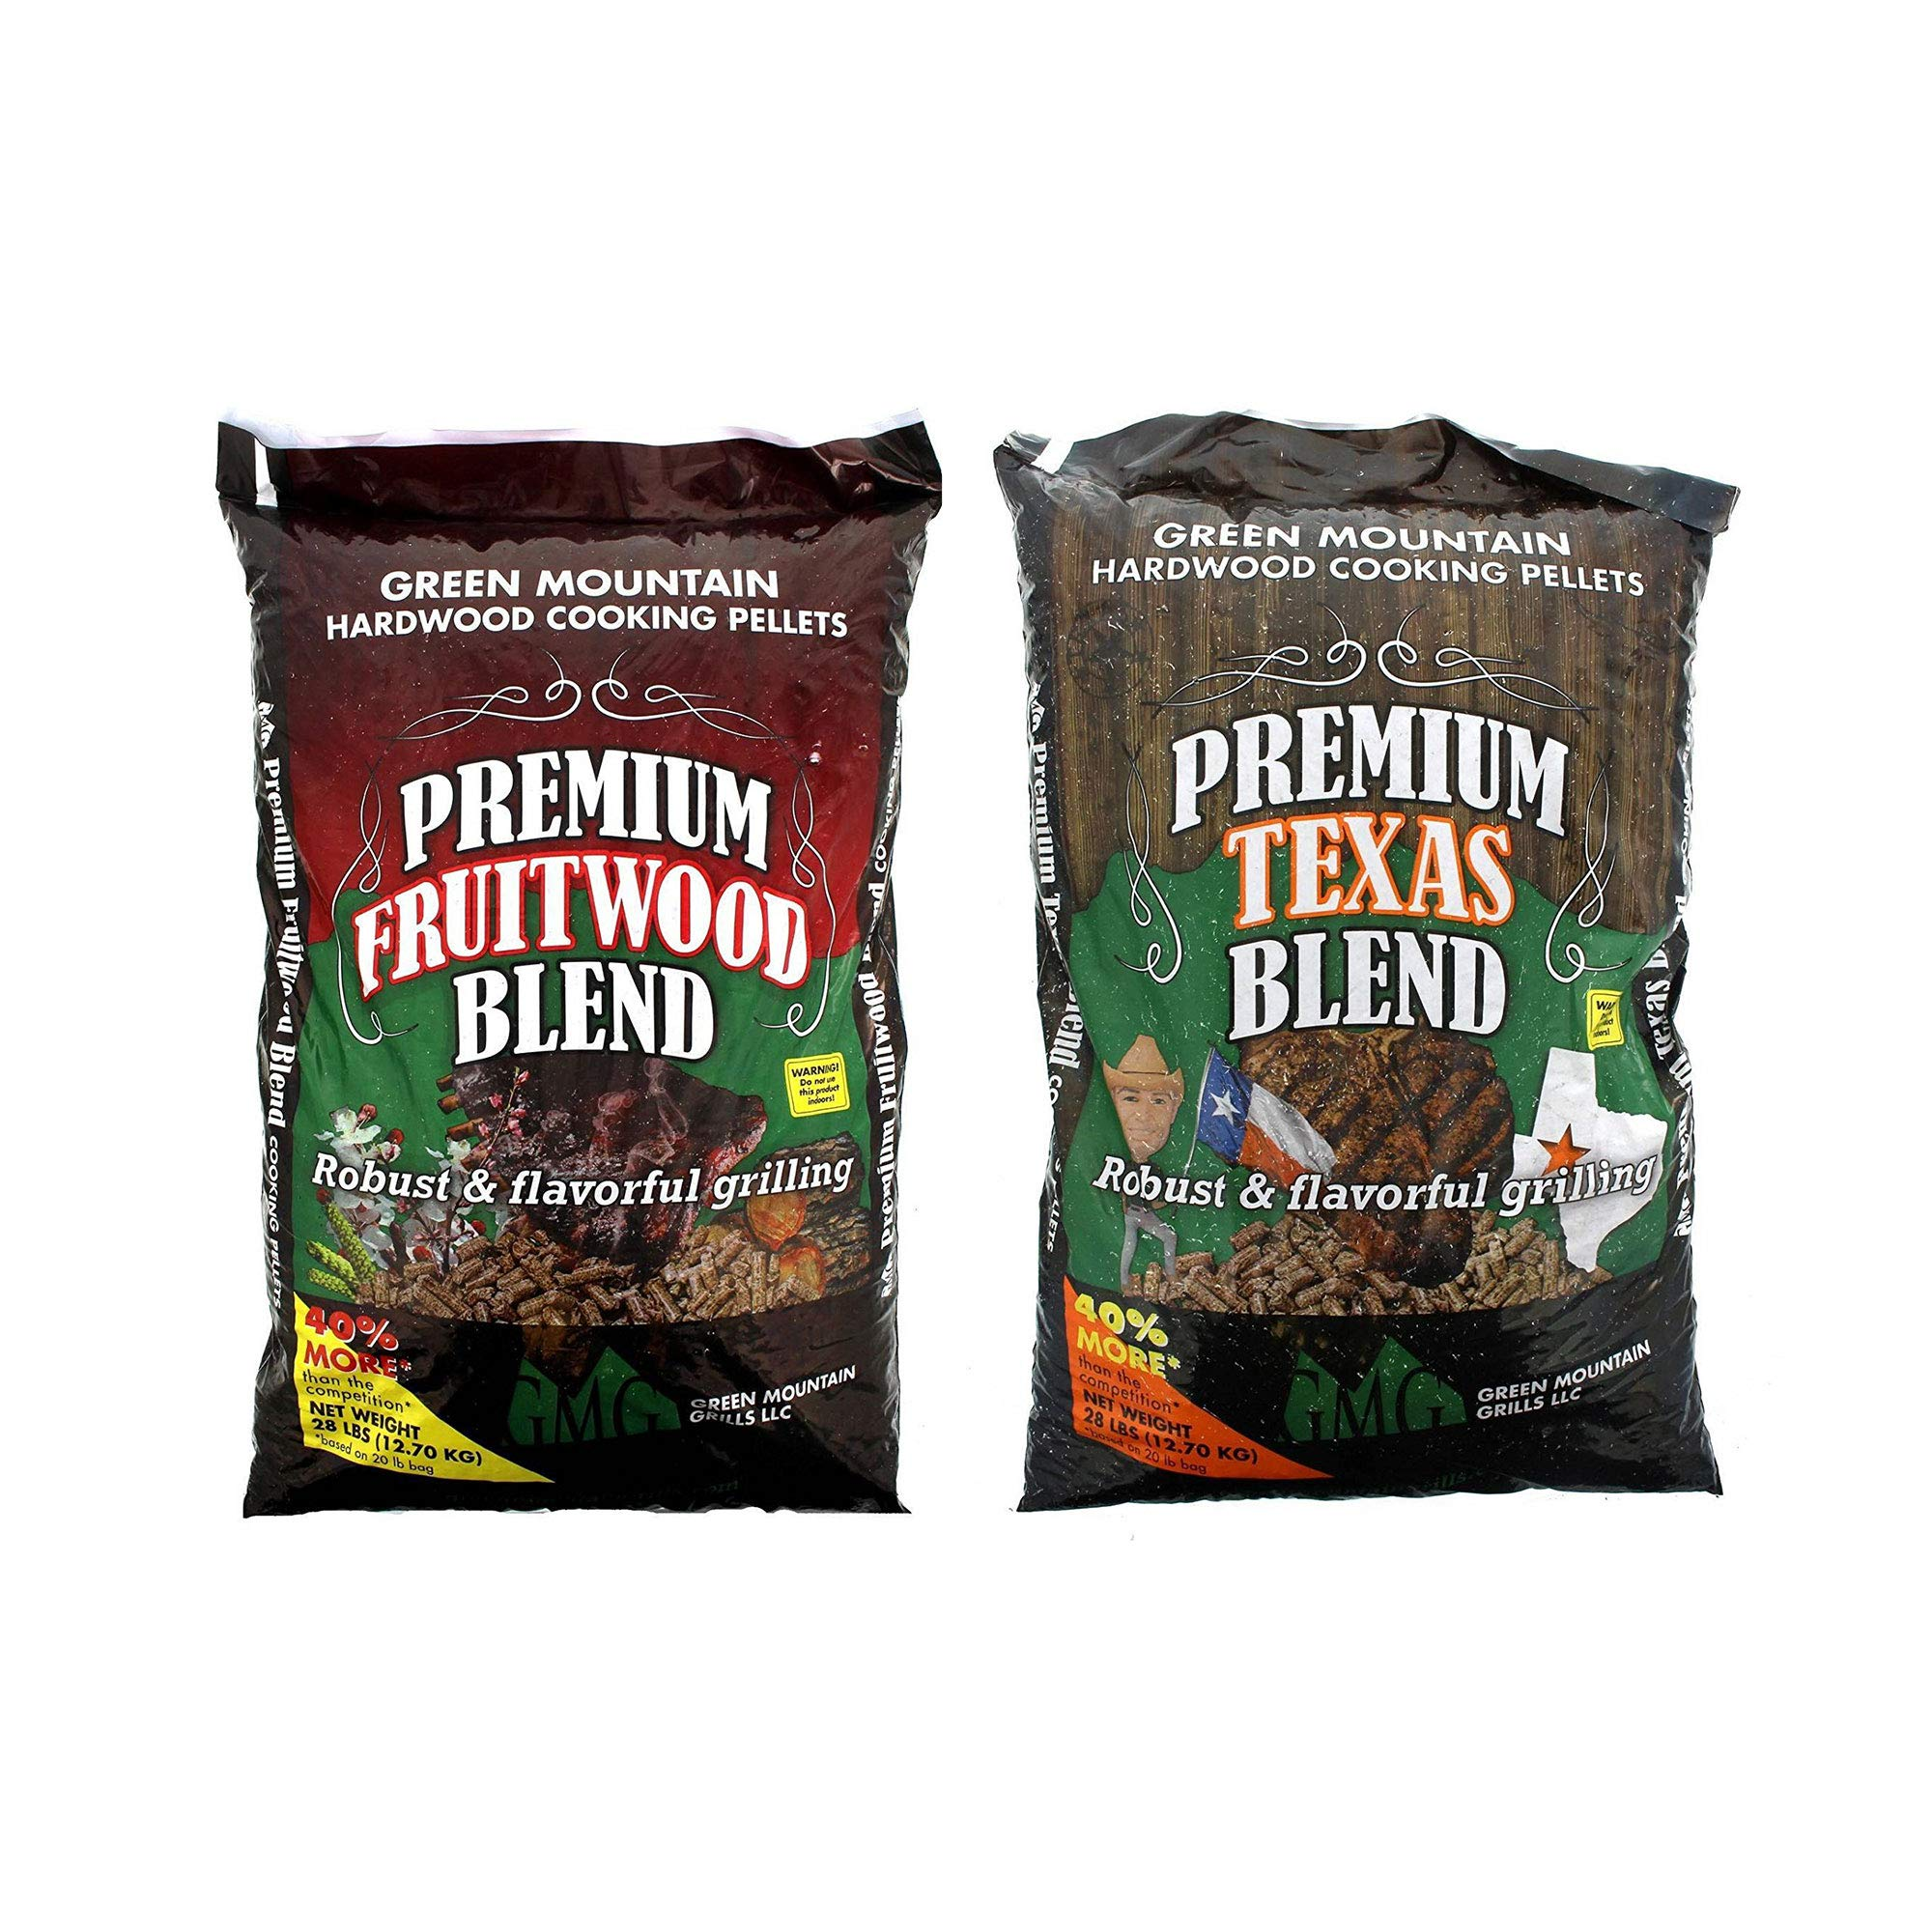 Green Mountain Grills Premium Texas 100% Pure Hardwood Grilling Cooking PelletsGreen Mountain Grills Premium Fruitwood Pure Hardwood Grilling Cooking Pellets